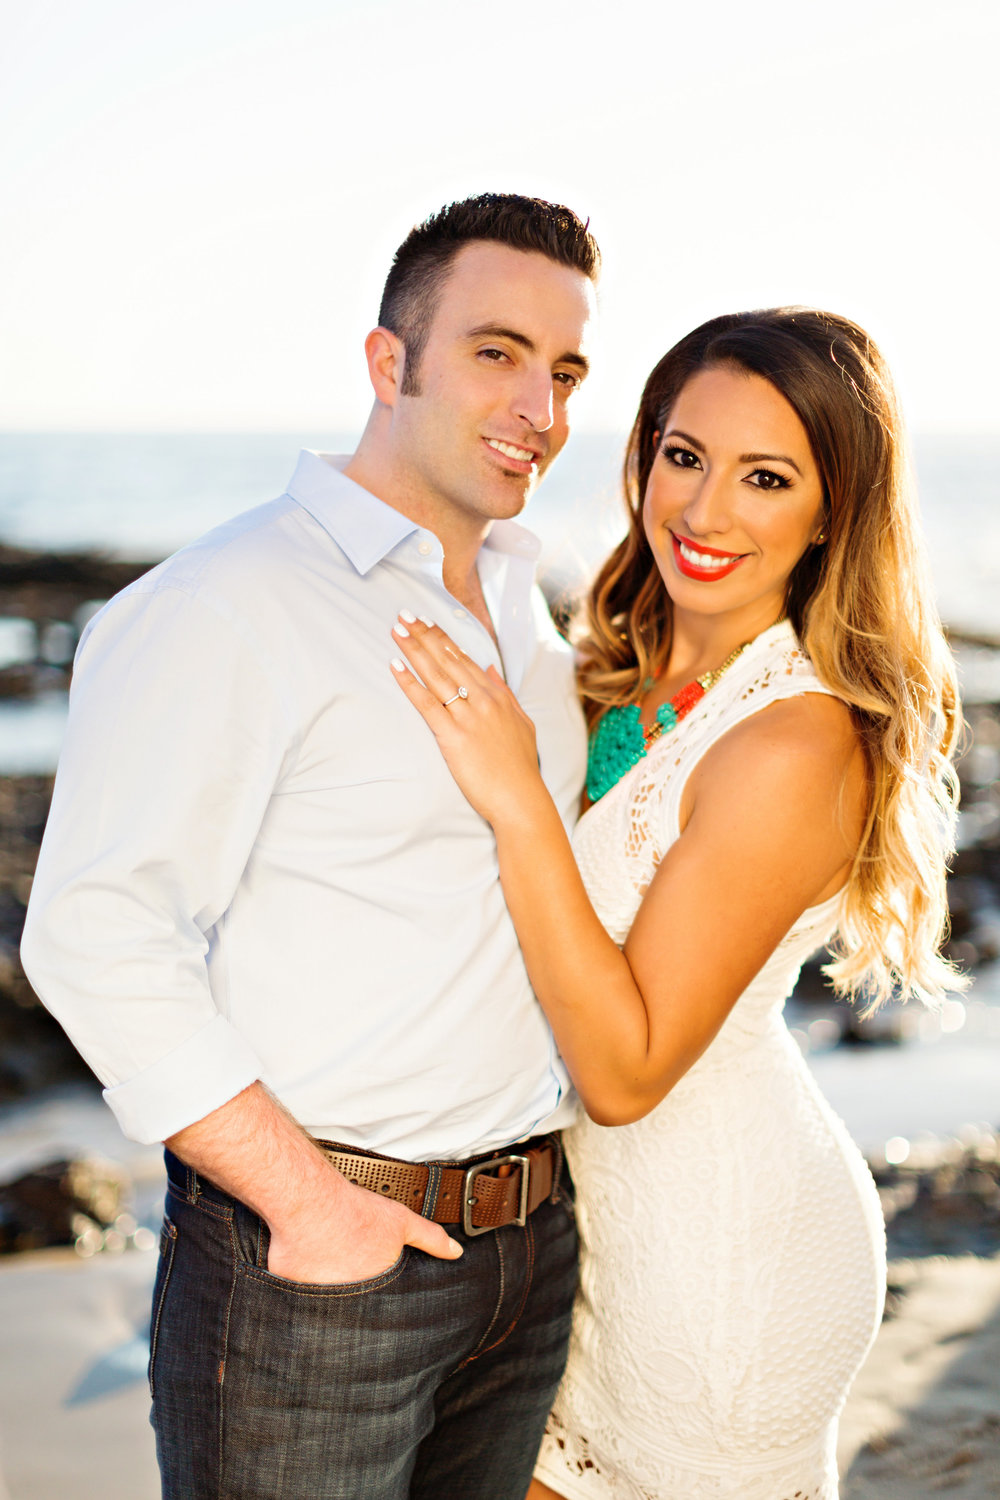 Jessica and Bobby-Jessica and Bobby engagement-0001.jpg